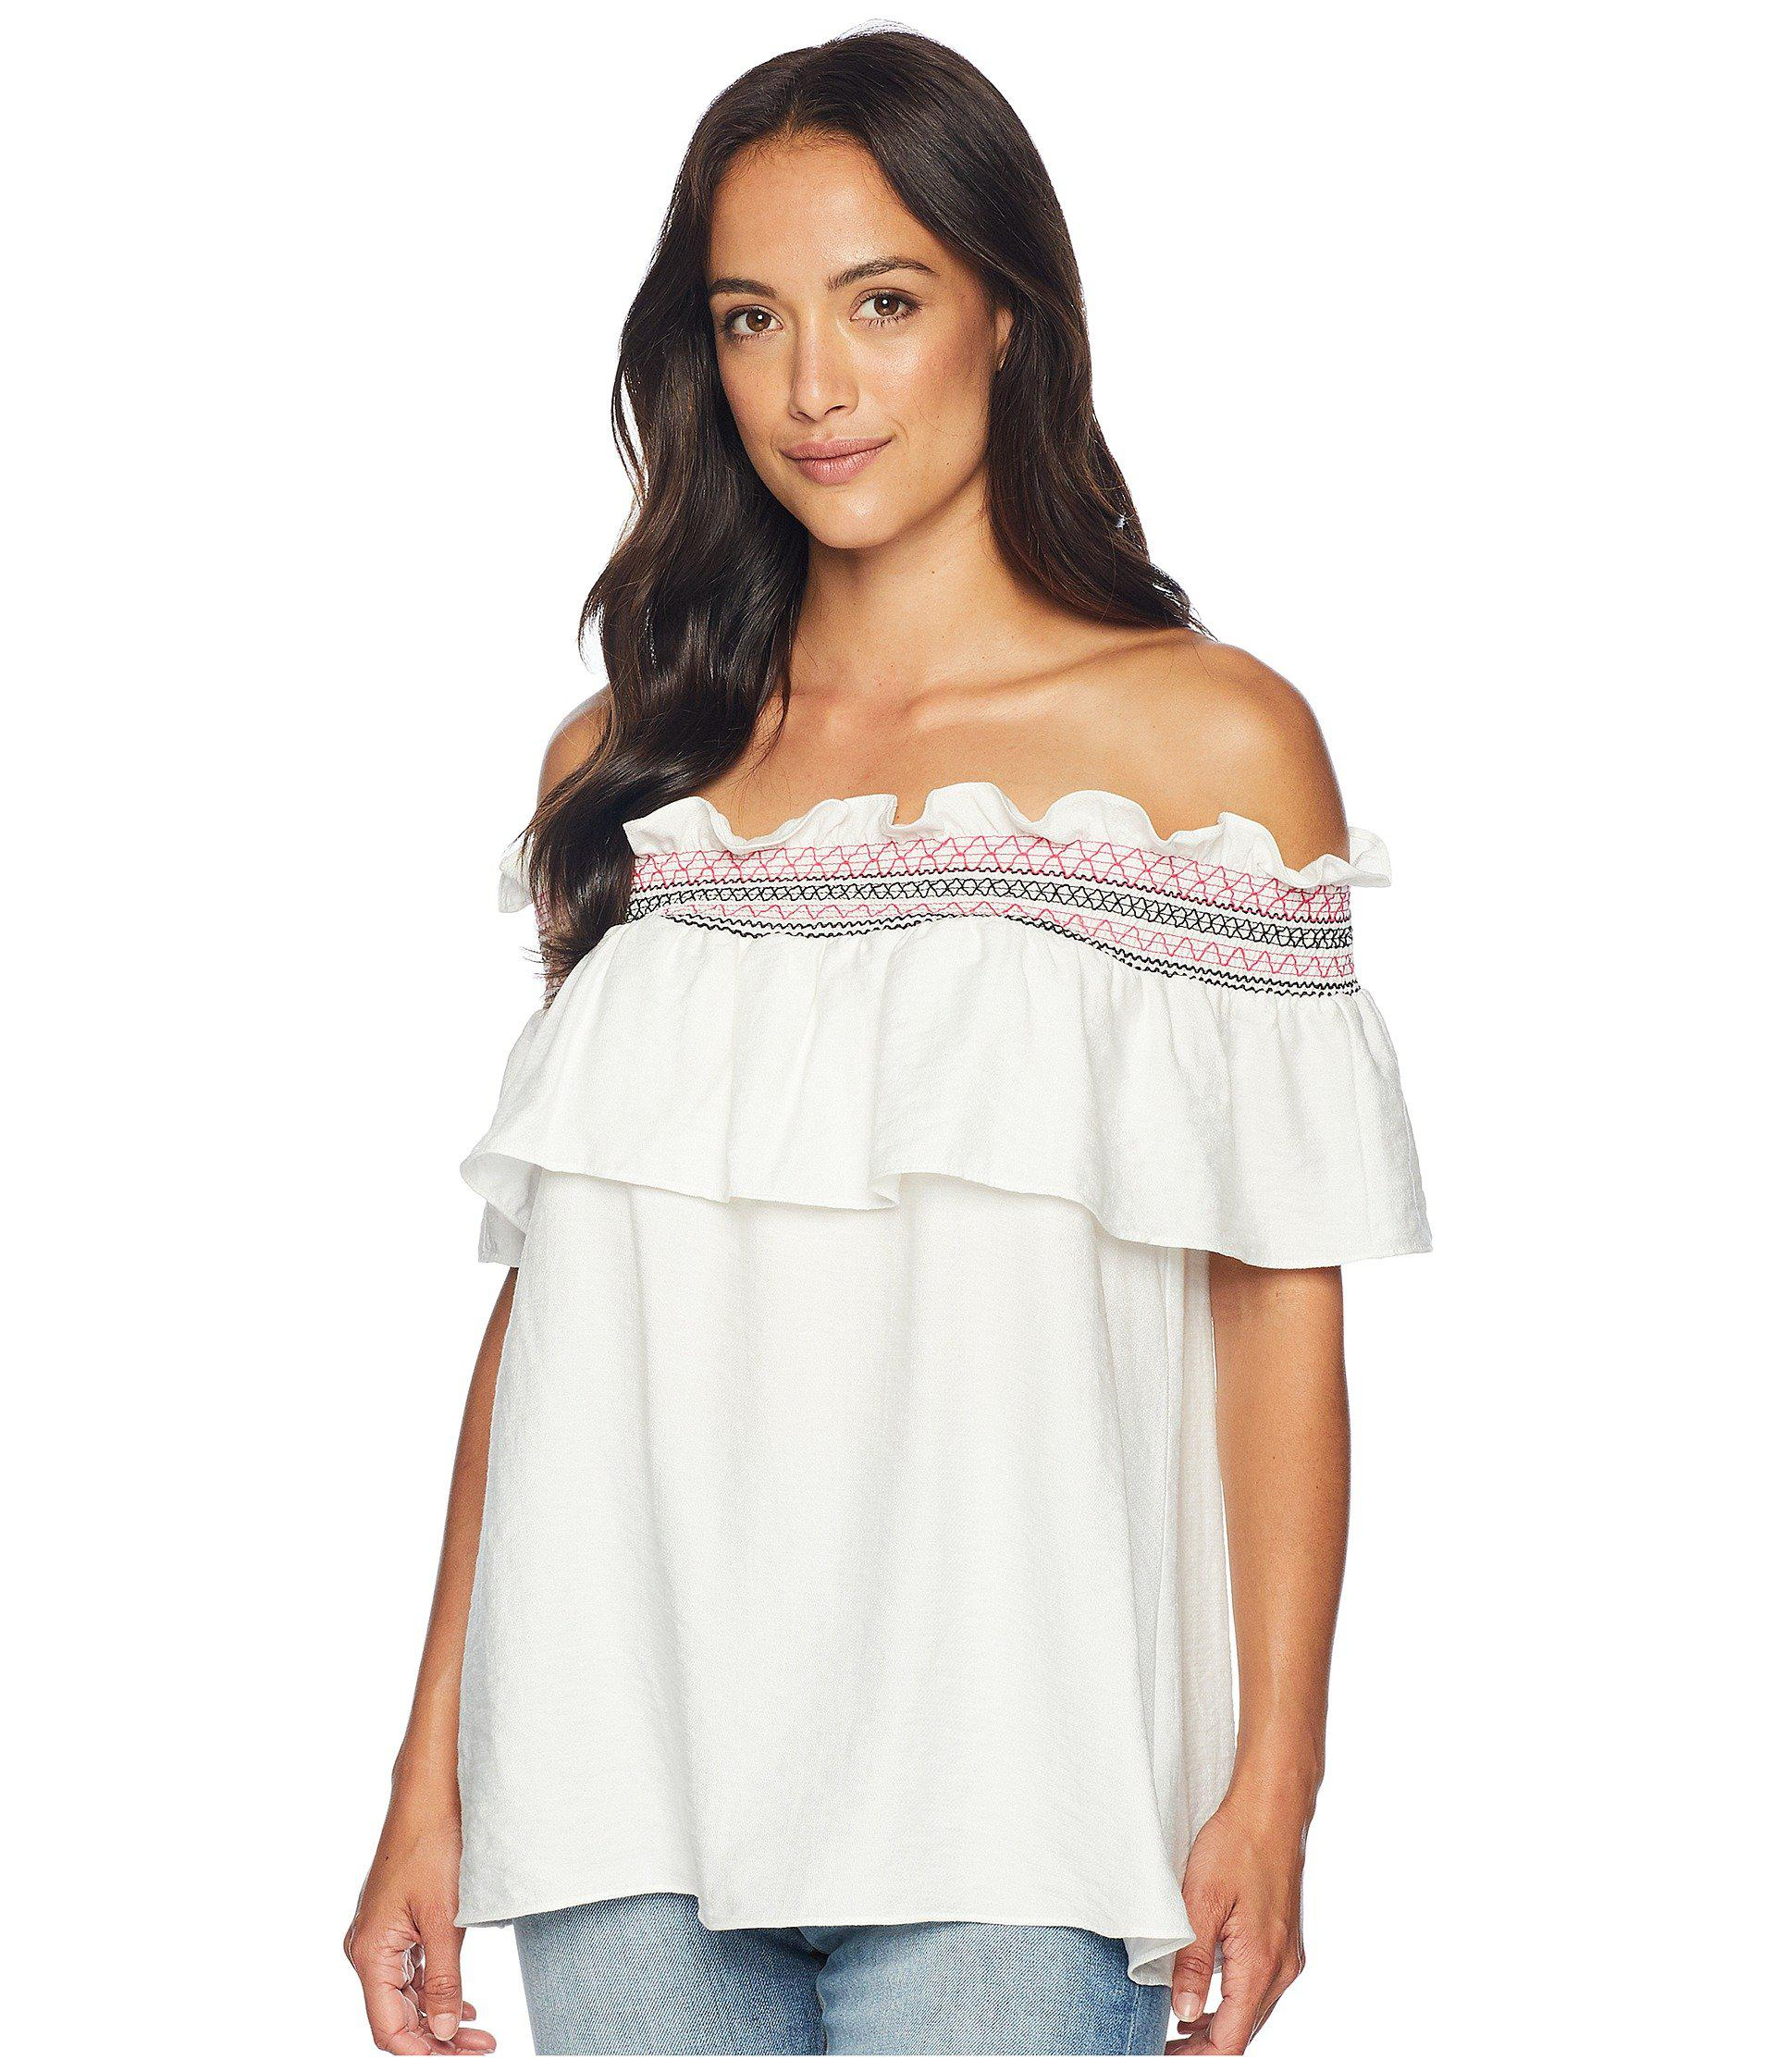 804d5c4021d Lyst - Cece Off The Shoulder Ruffled Top With Ric Rac Trim in White ...